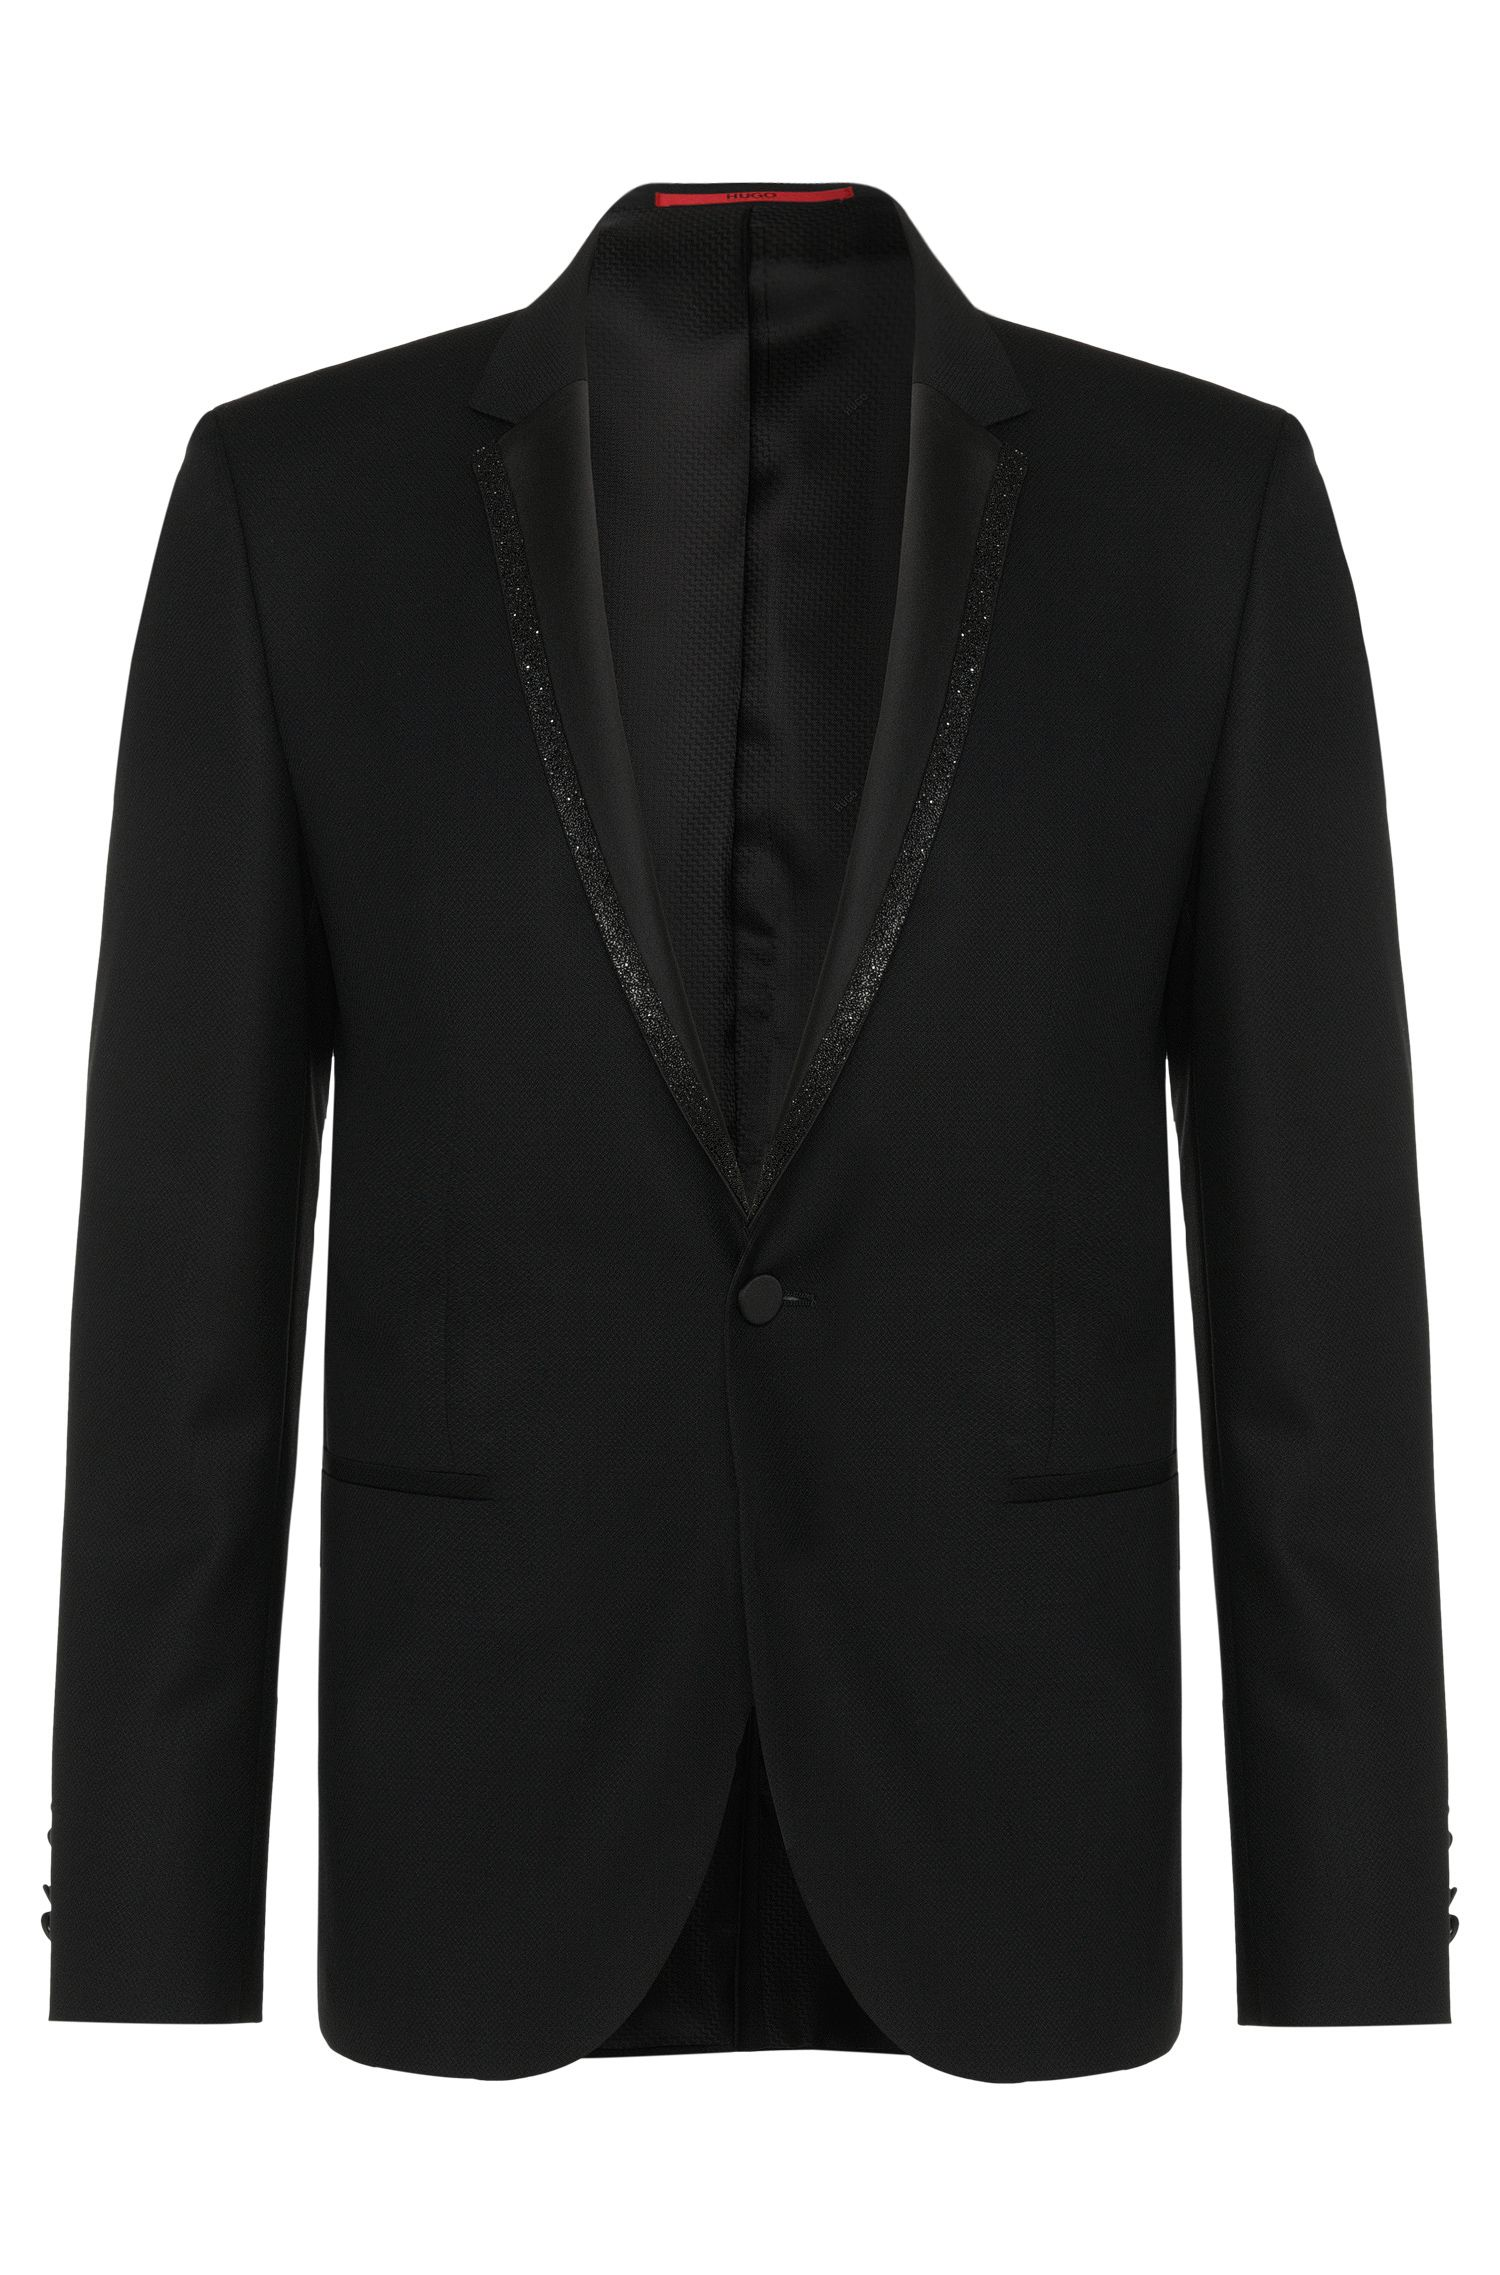 'Adrison' | Extra Slim Fit, Virgin Wool Glitter Lapel Sport Coat